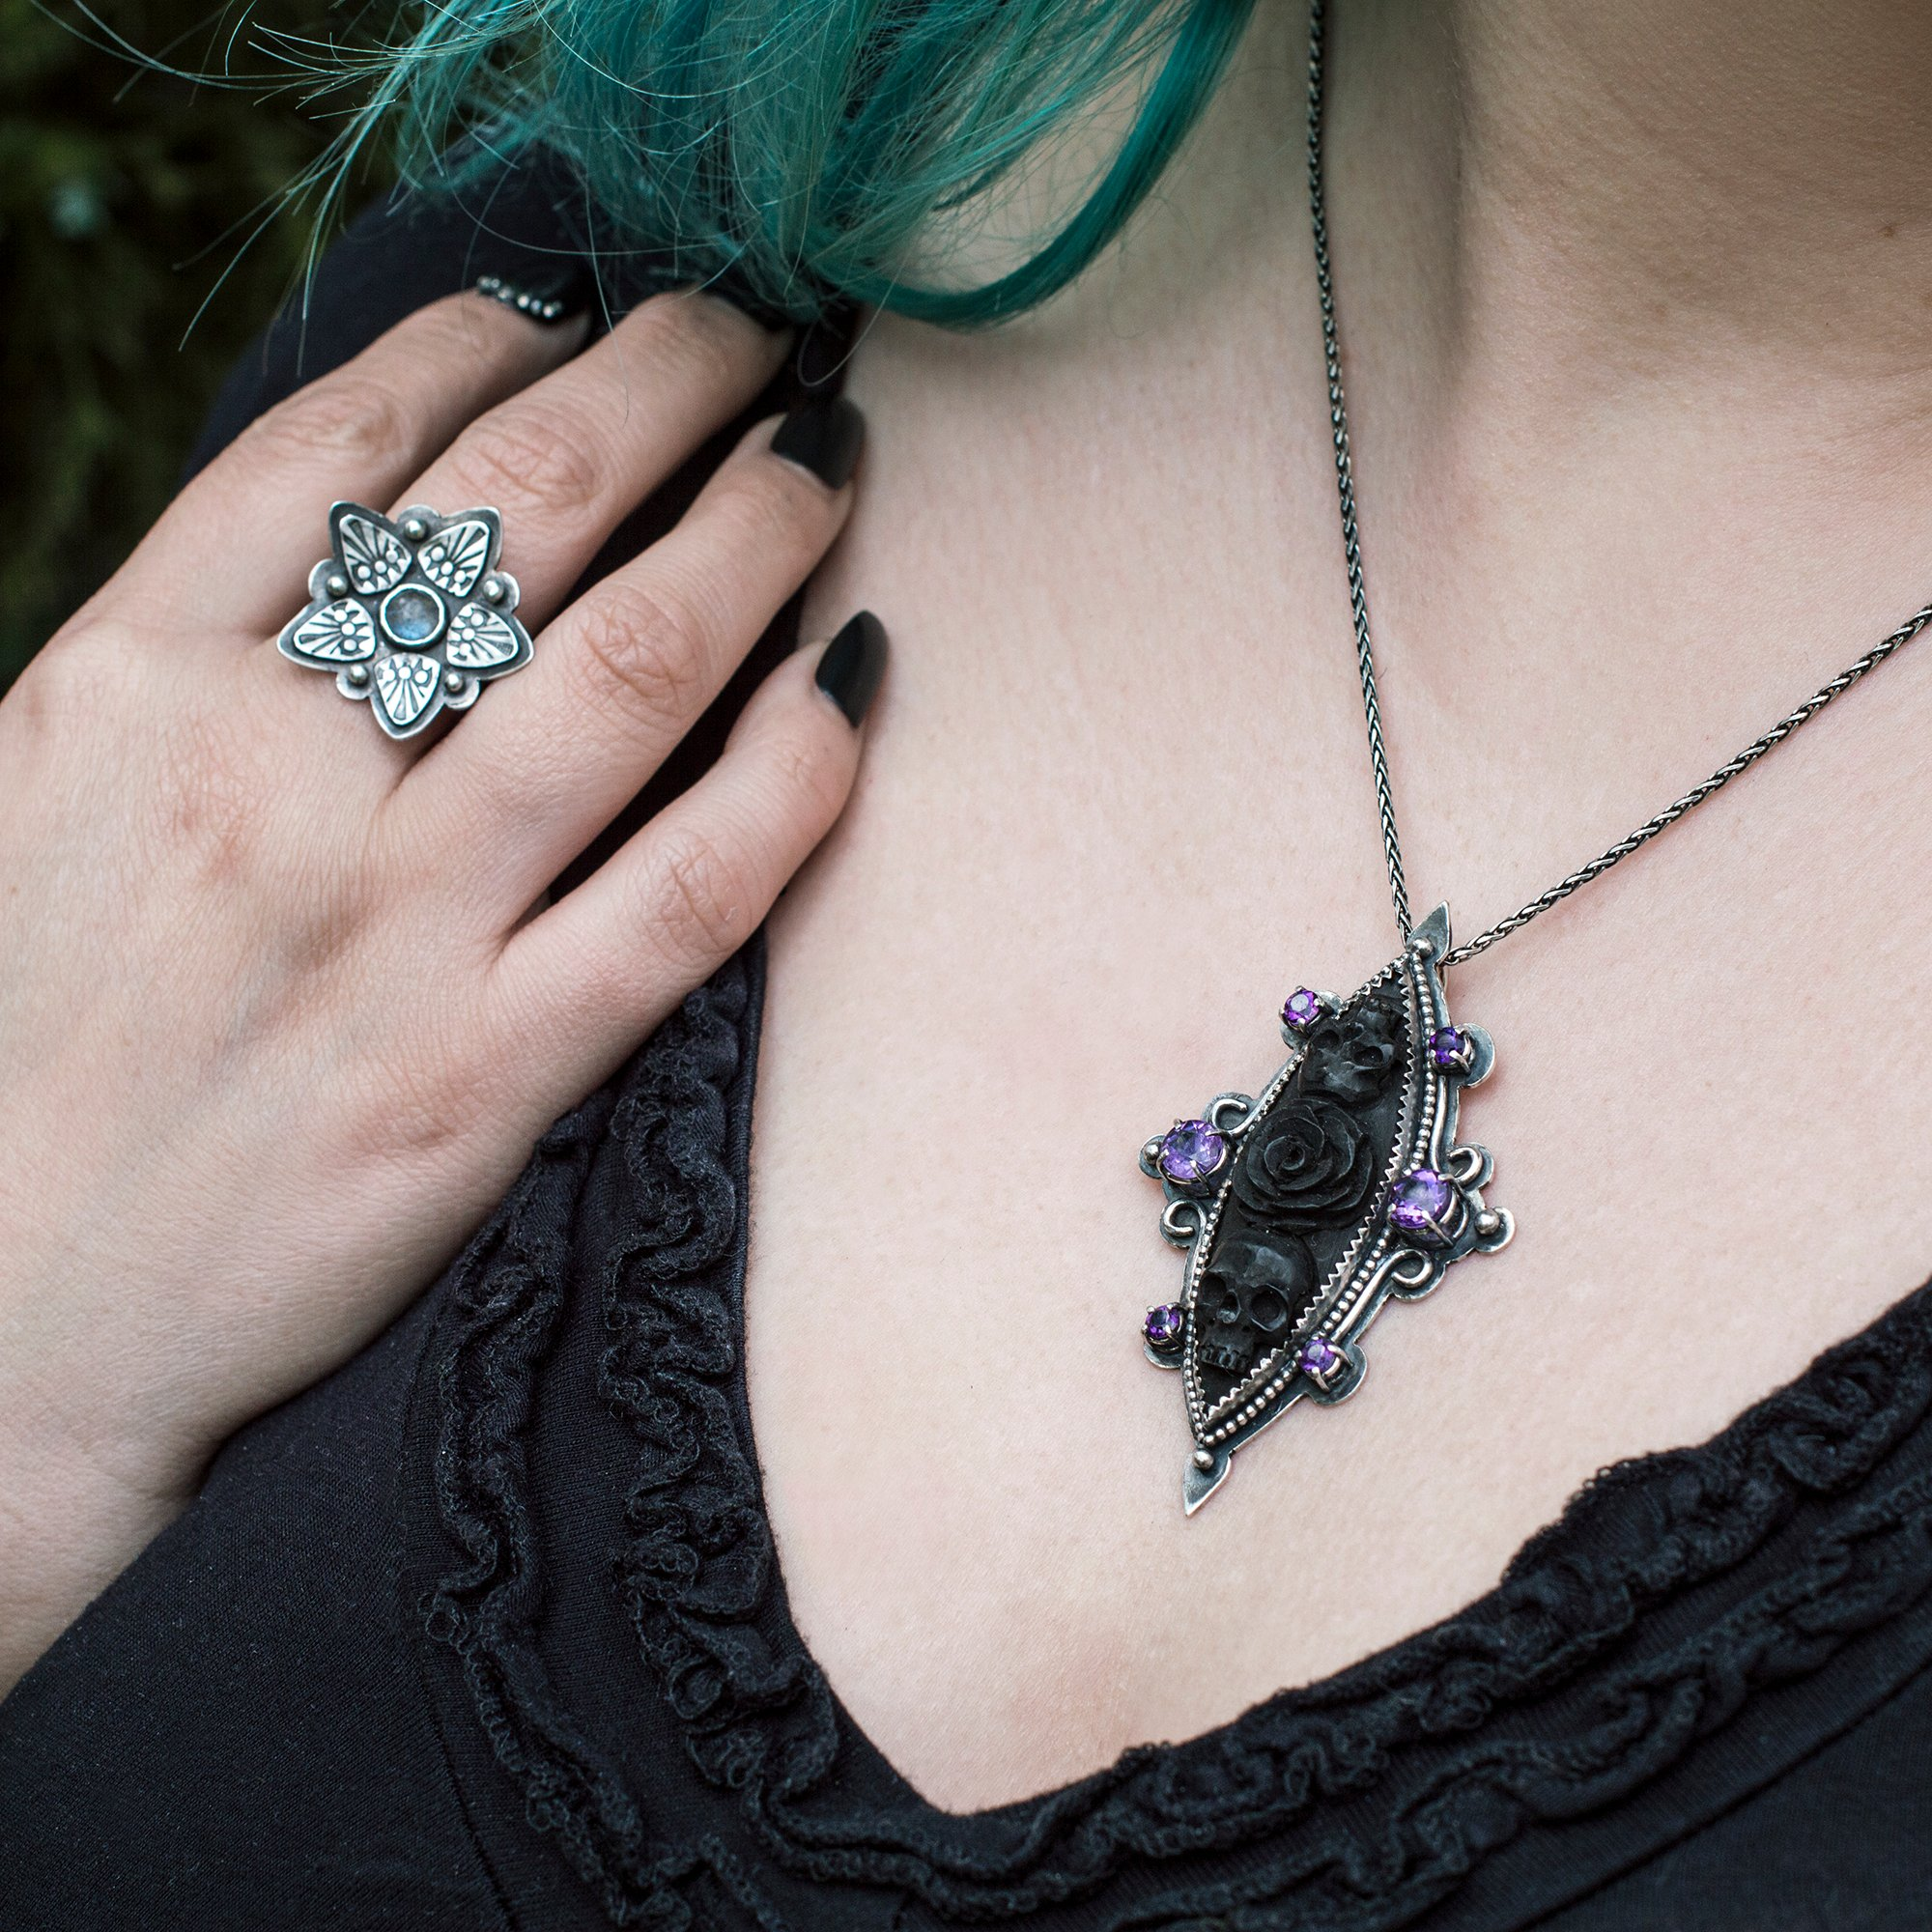 Handfabricated gothic jewelry in sterling silver